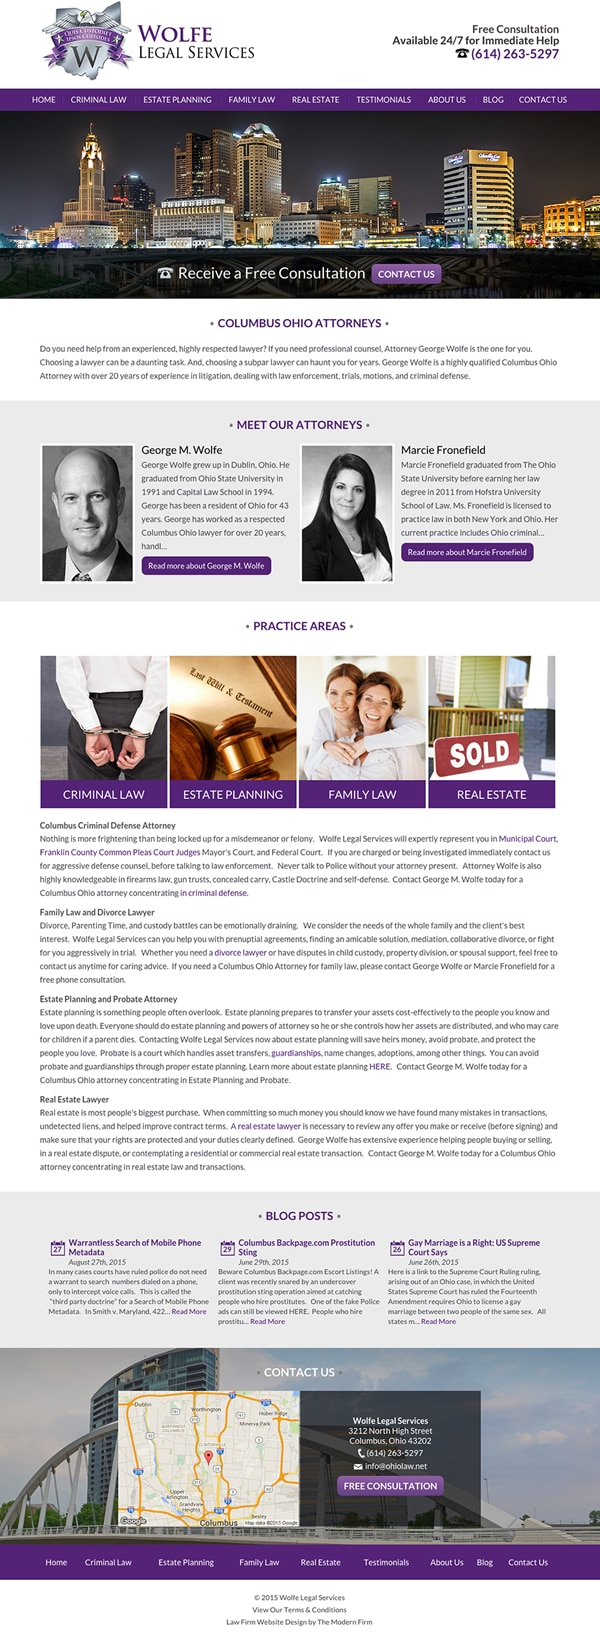 Law Firm Website Design for Wolfe Legal Services